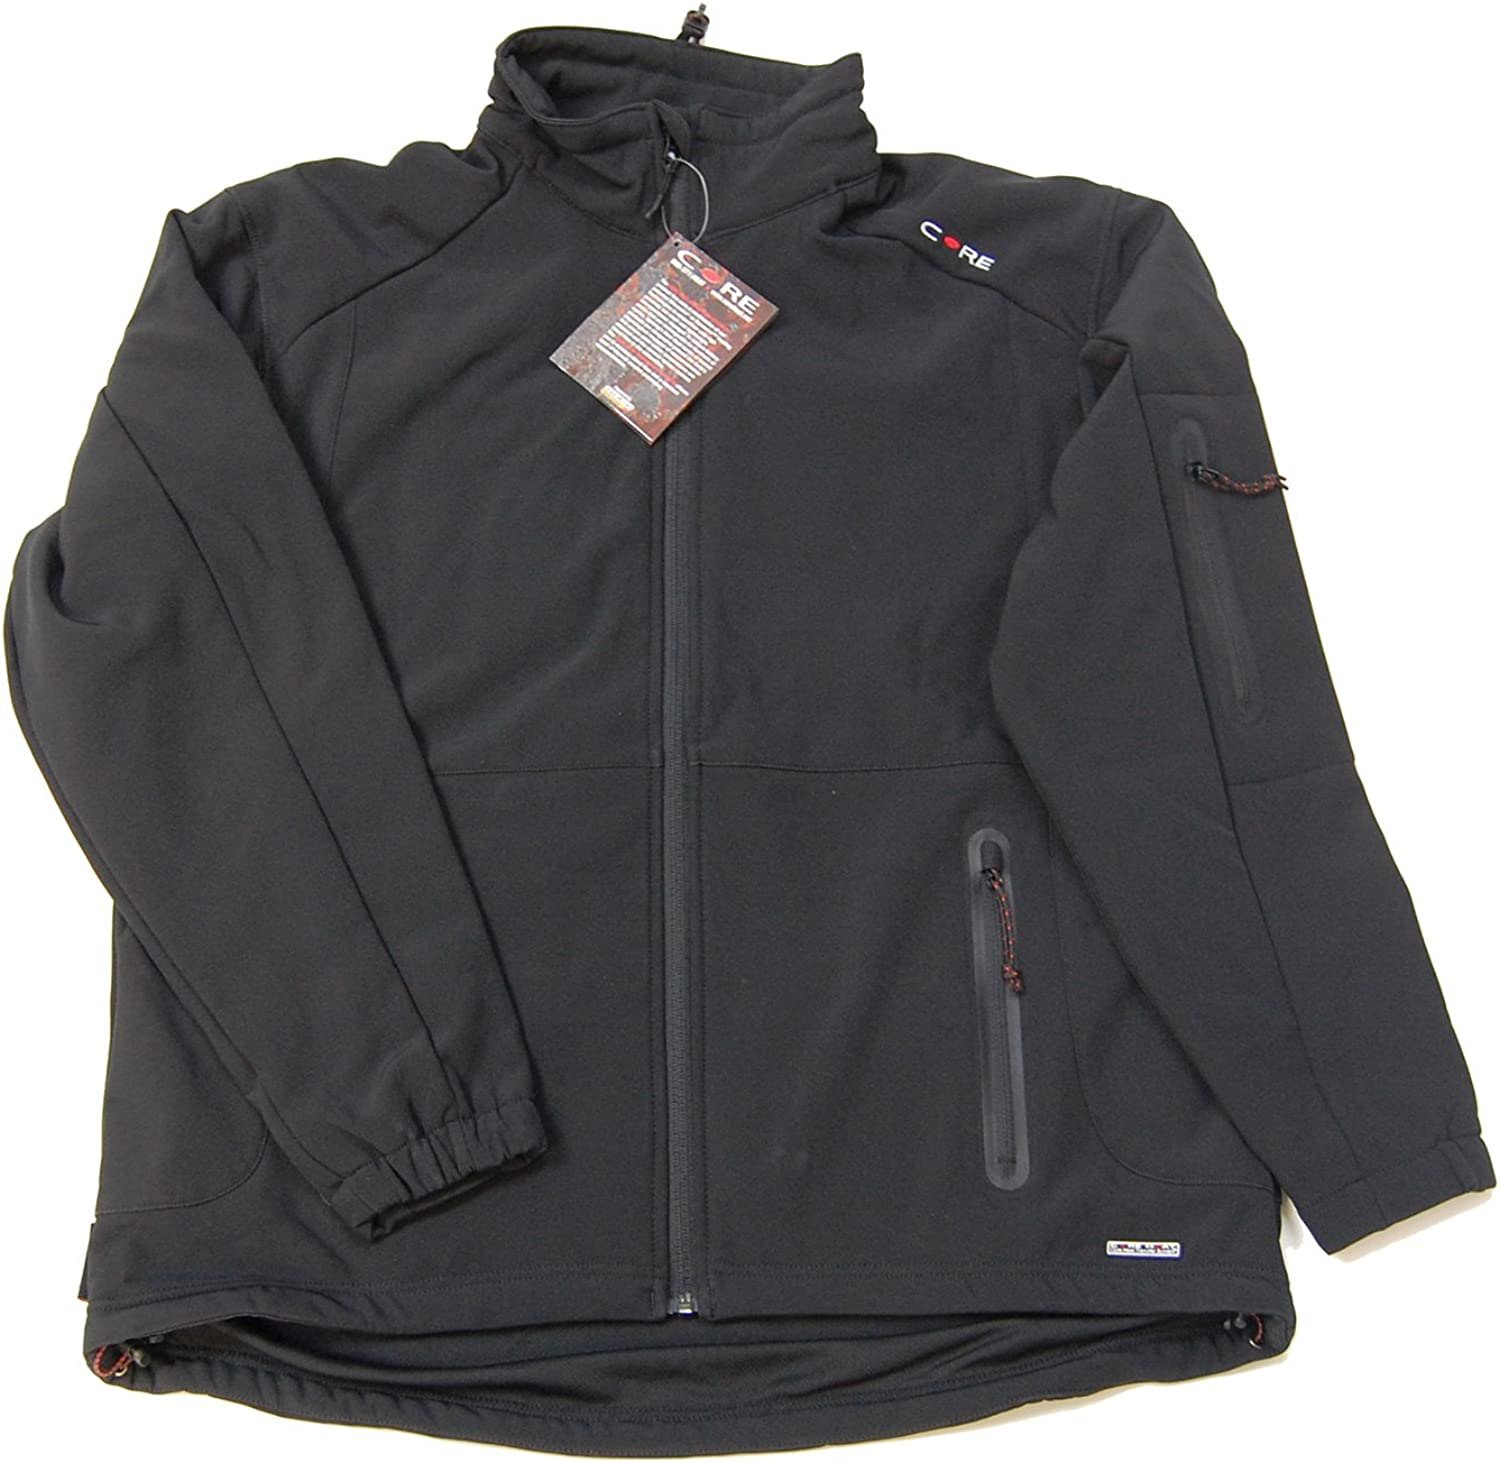 CORE Softshell Jacket Recommendation low-pricing Unisex XSmall Black